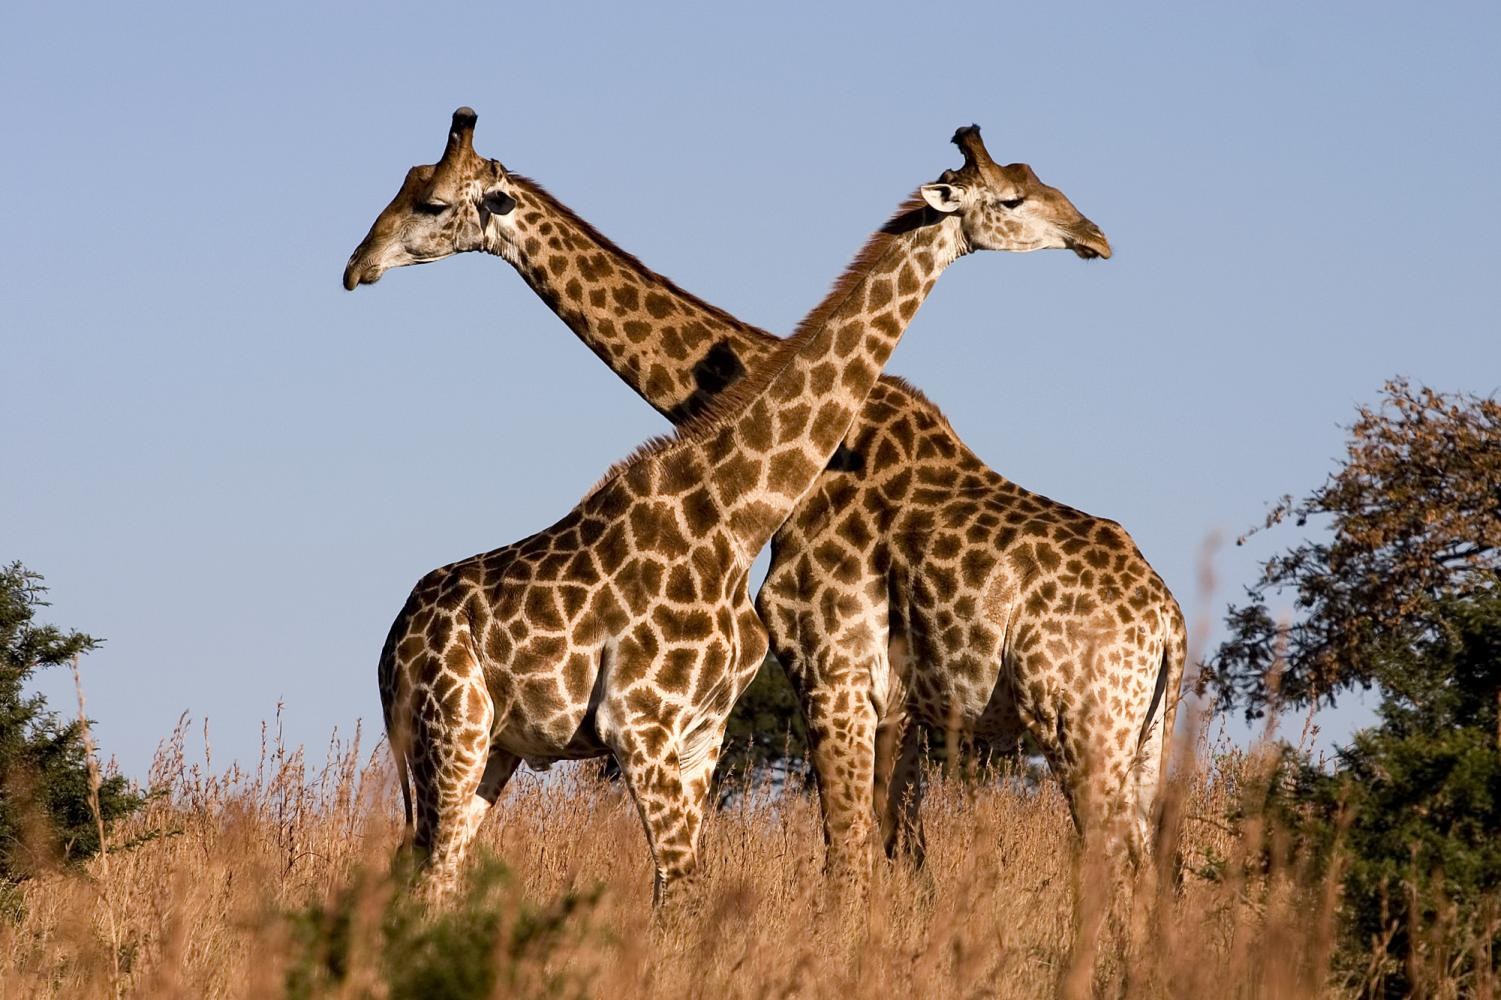 Giraffes are now endangered species.